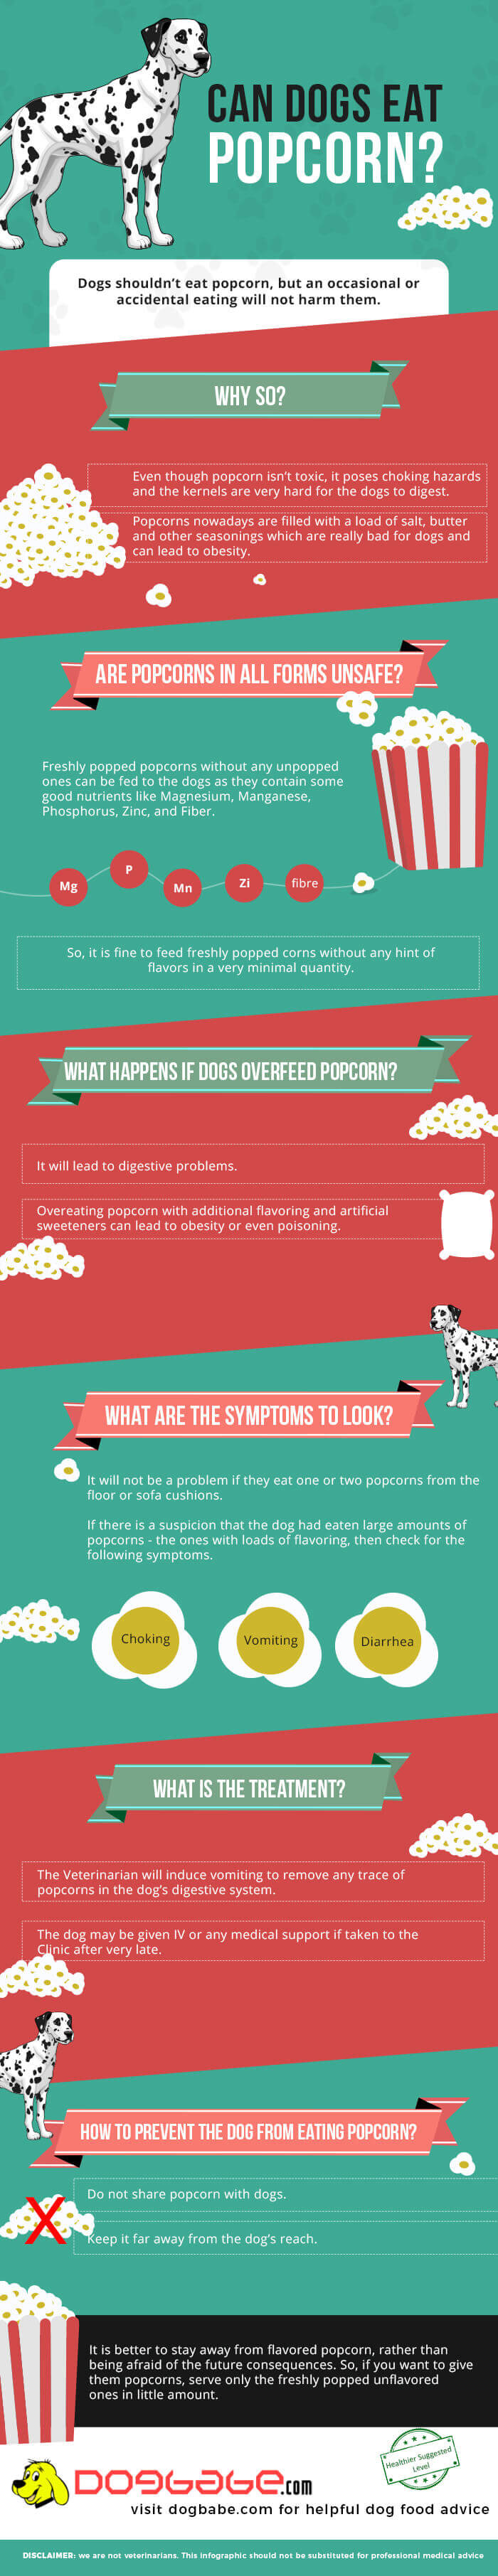 Can dogs eat popcorn infographic